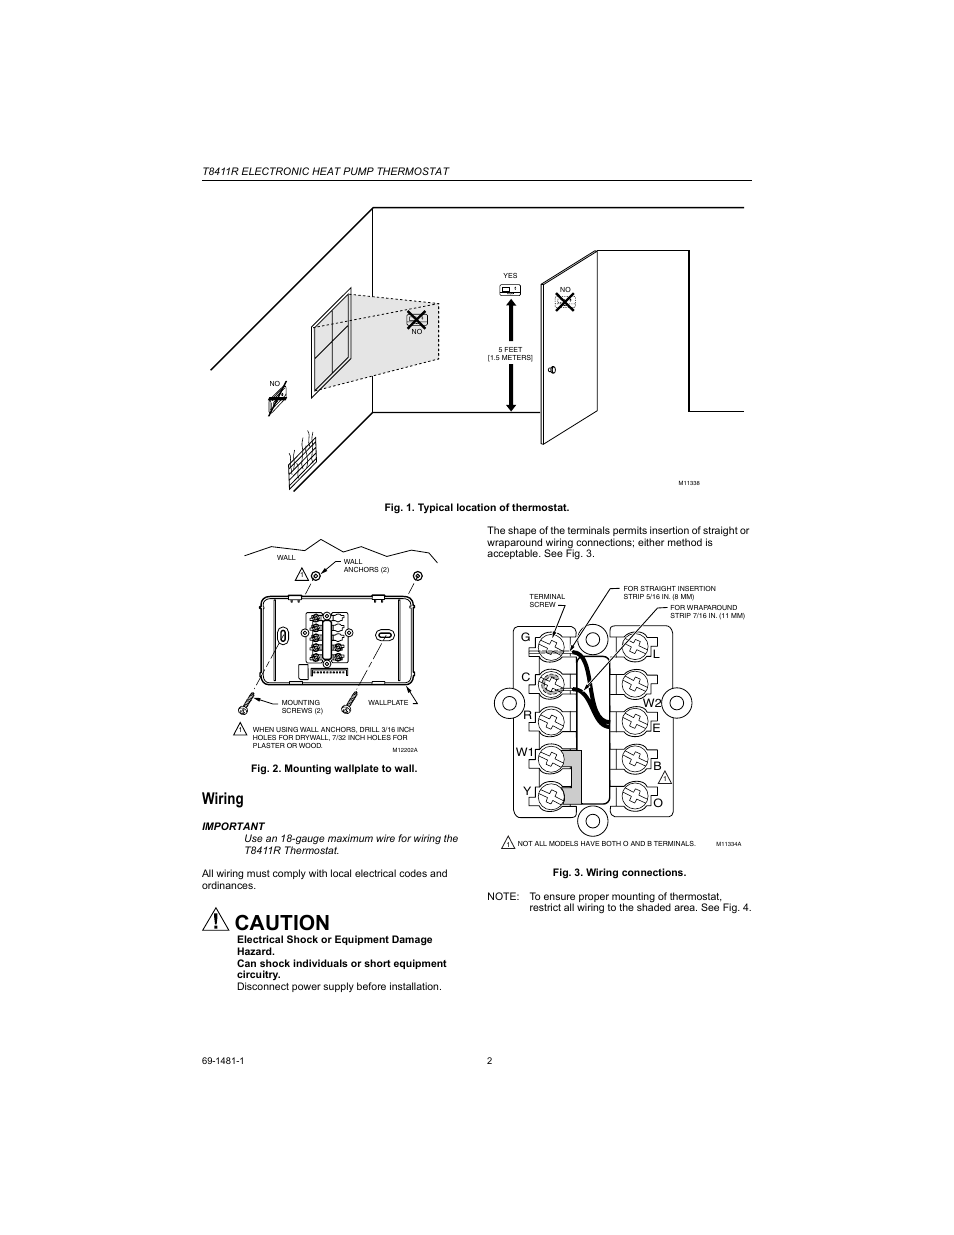 Wiring Diagram For A Heat Pump Thermostat